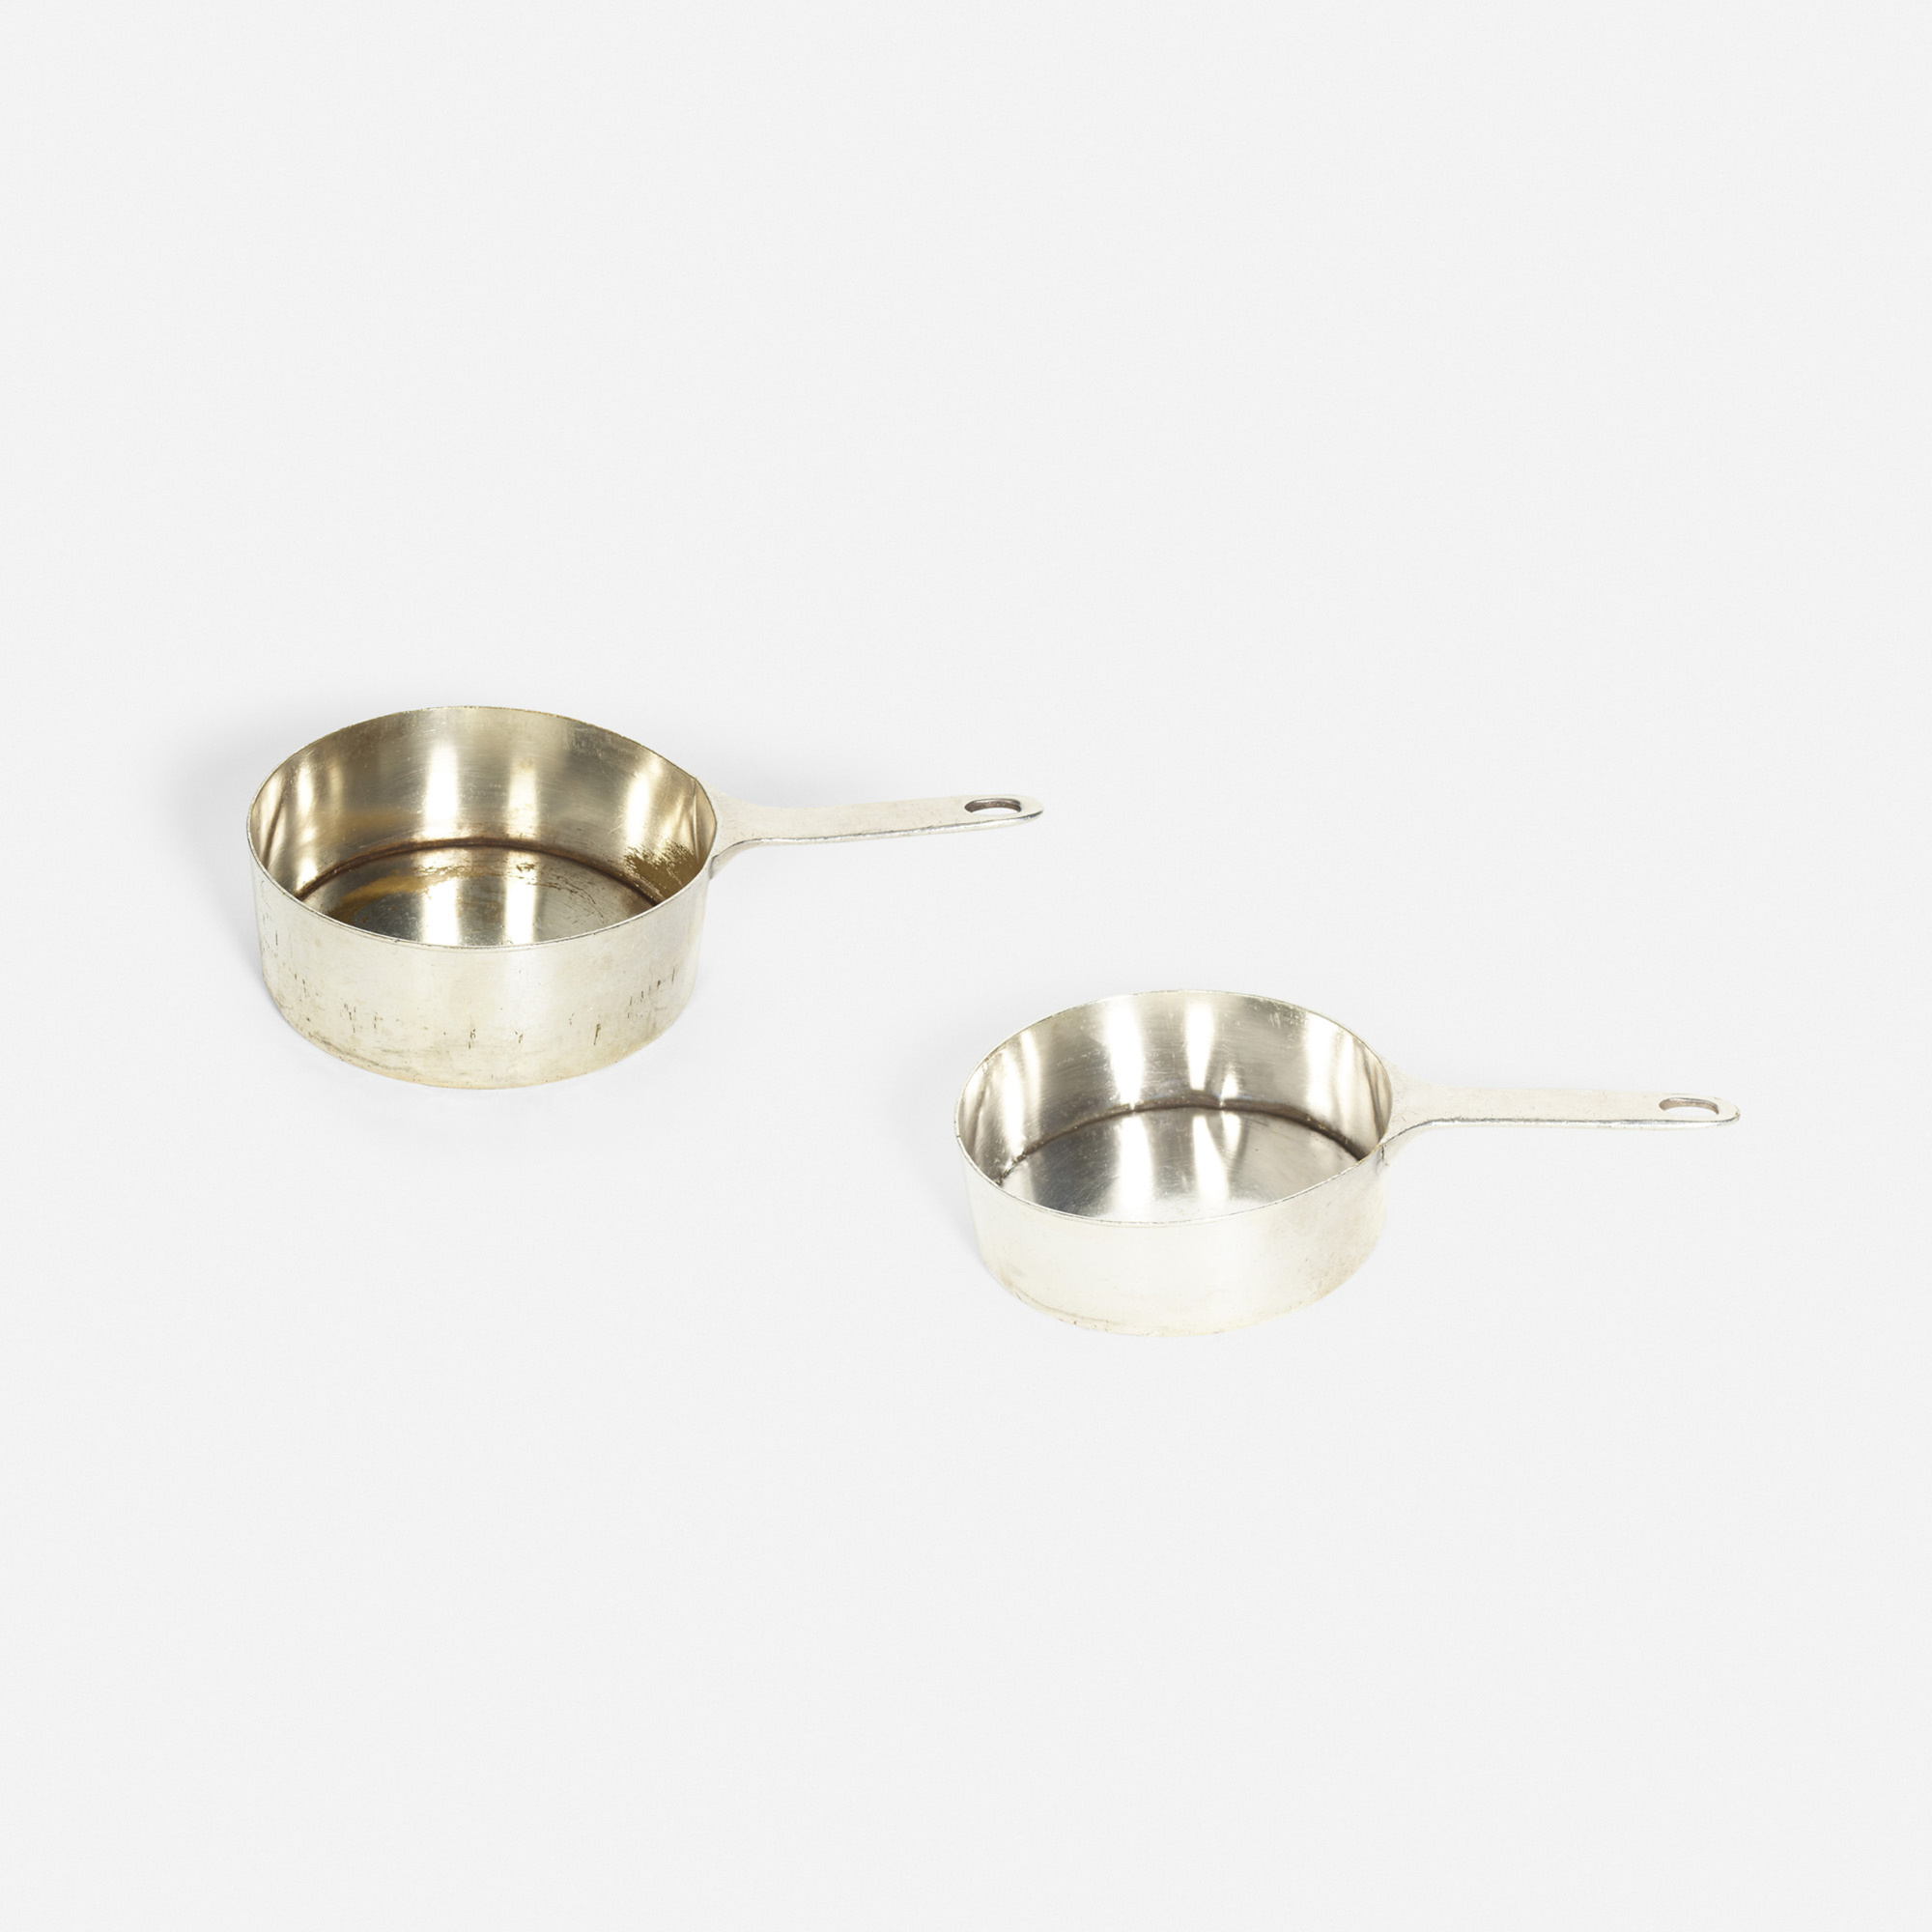 871: Garth and Ada Louise Huxtable / sauce pots from the kitchen of The Four Seasons, set of two (1 of 1)